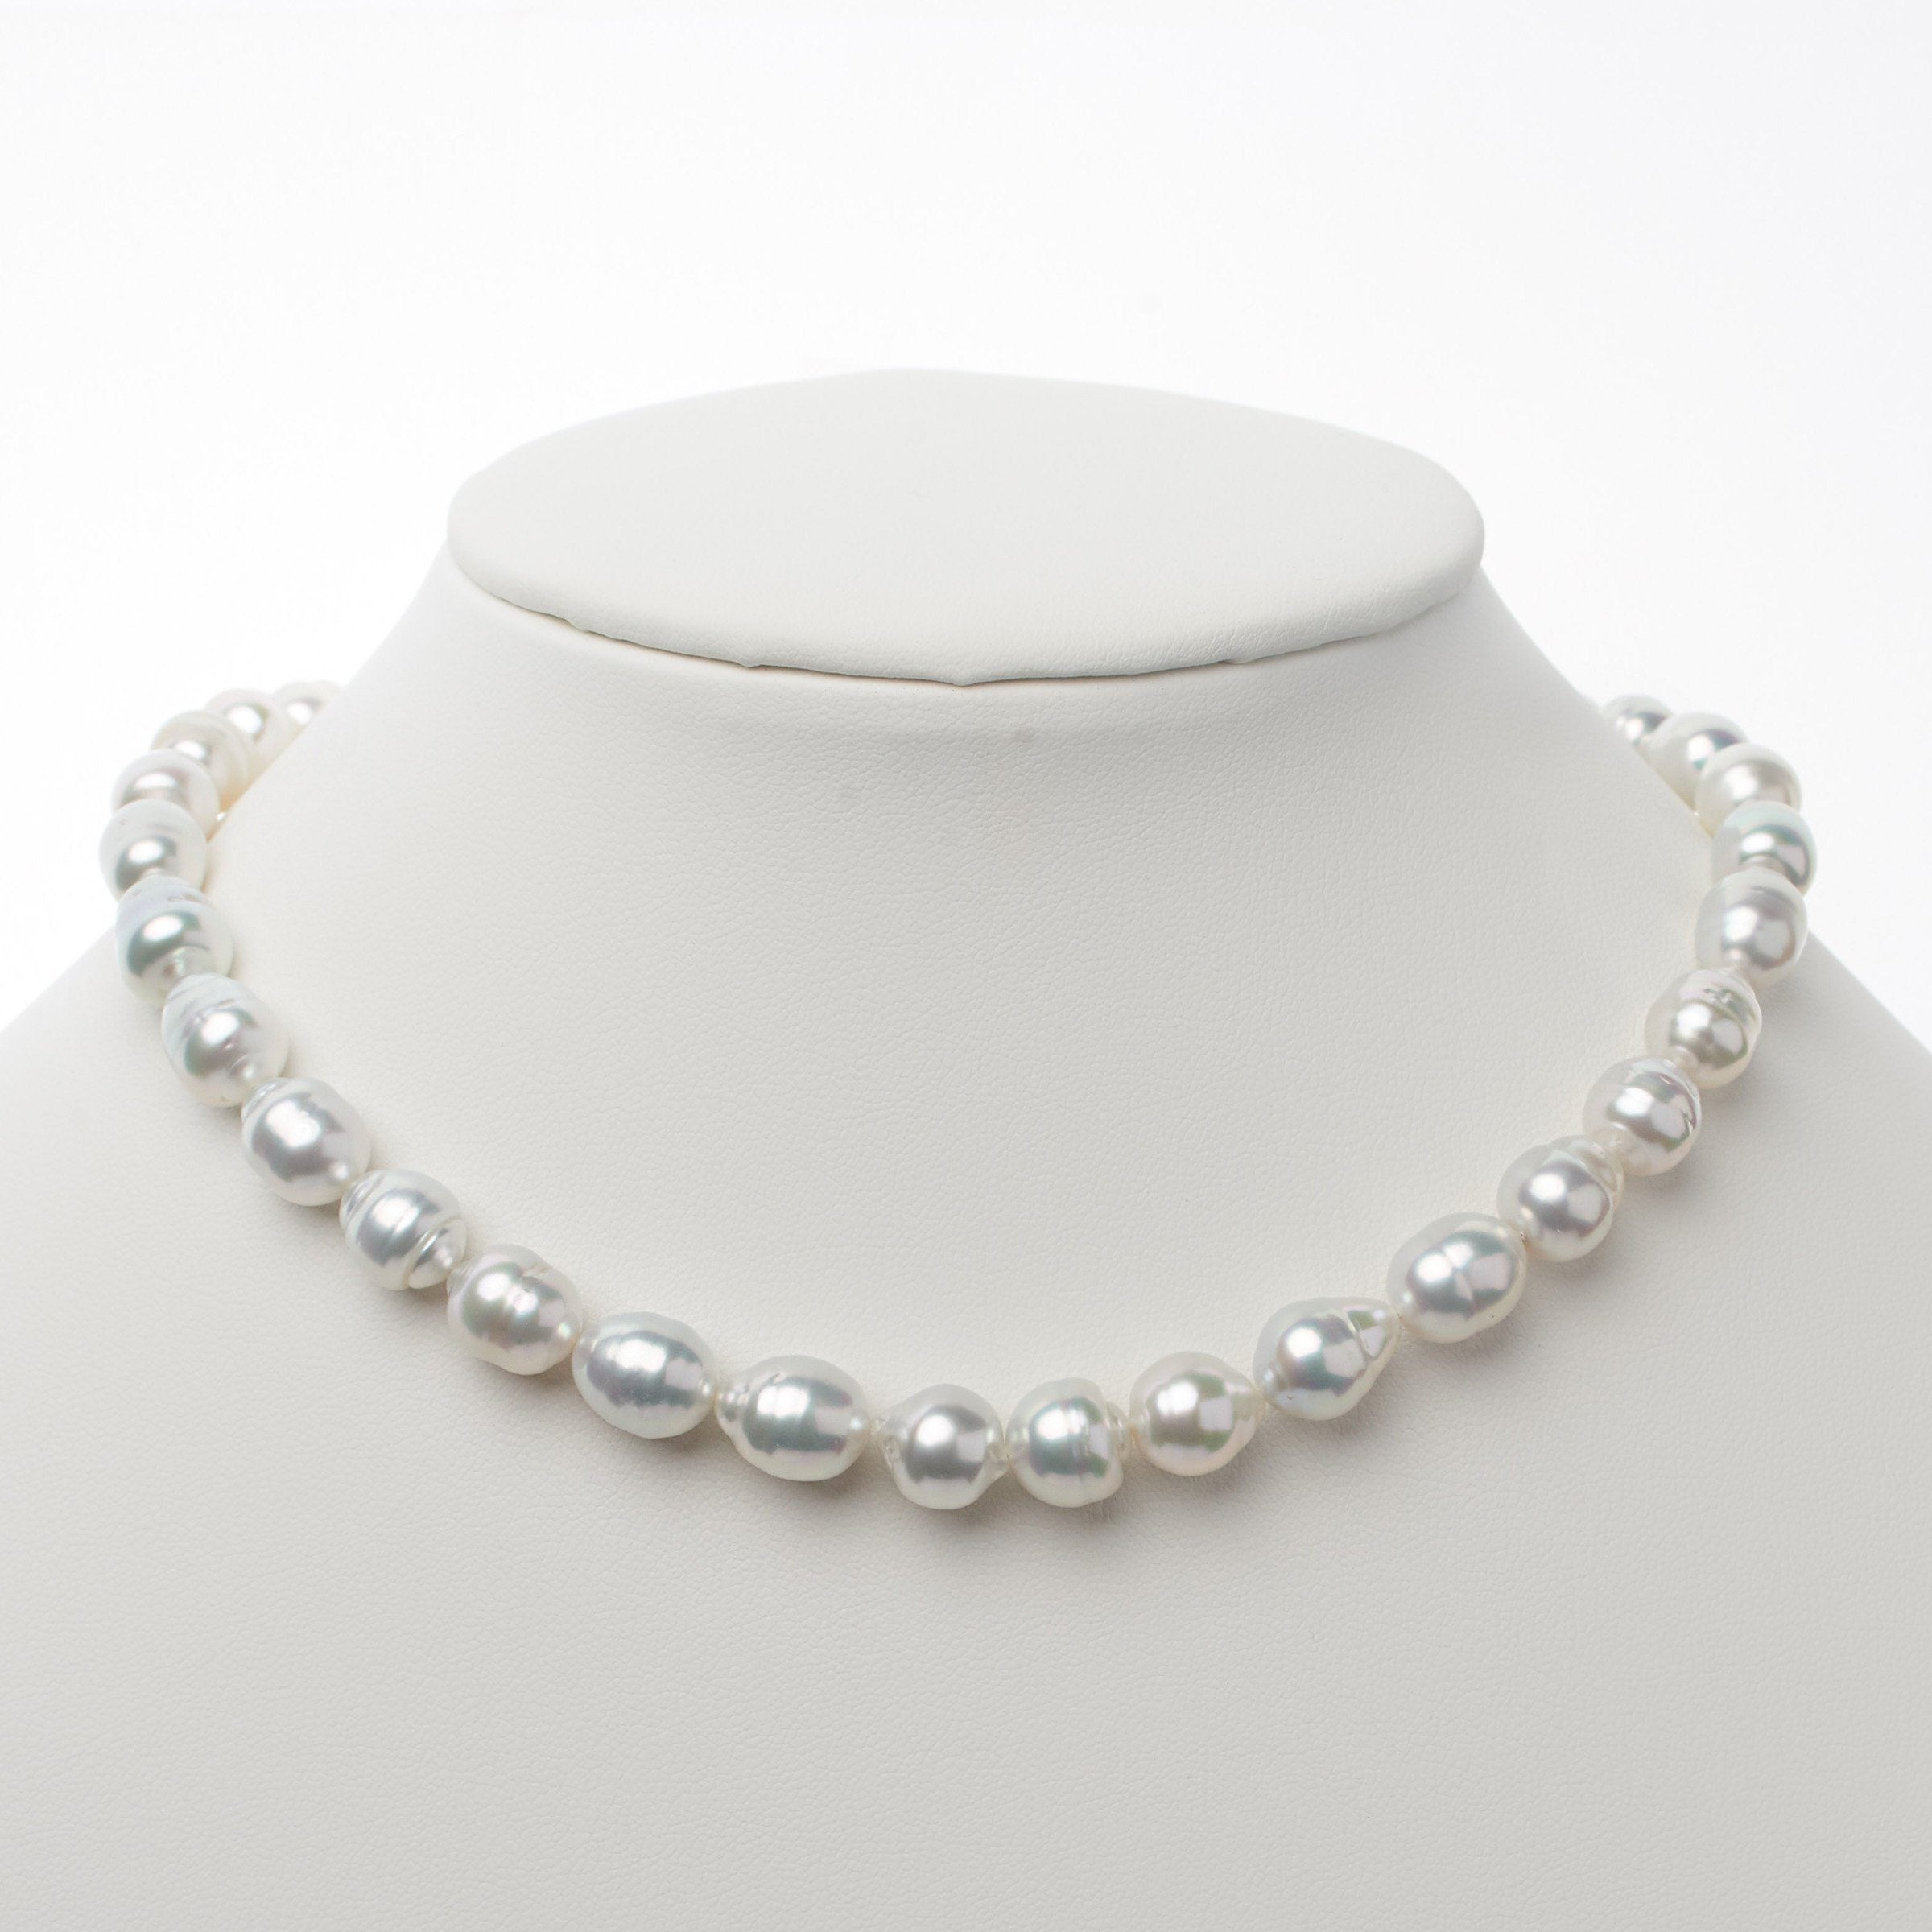 8.1-10.5 mm AA+/AAA White South Sea Baroque Necklace